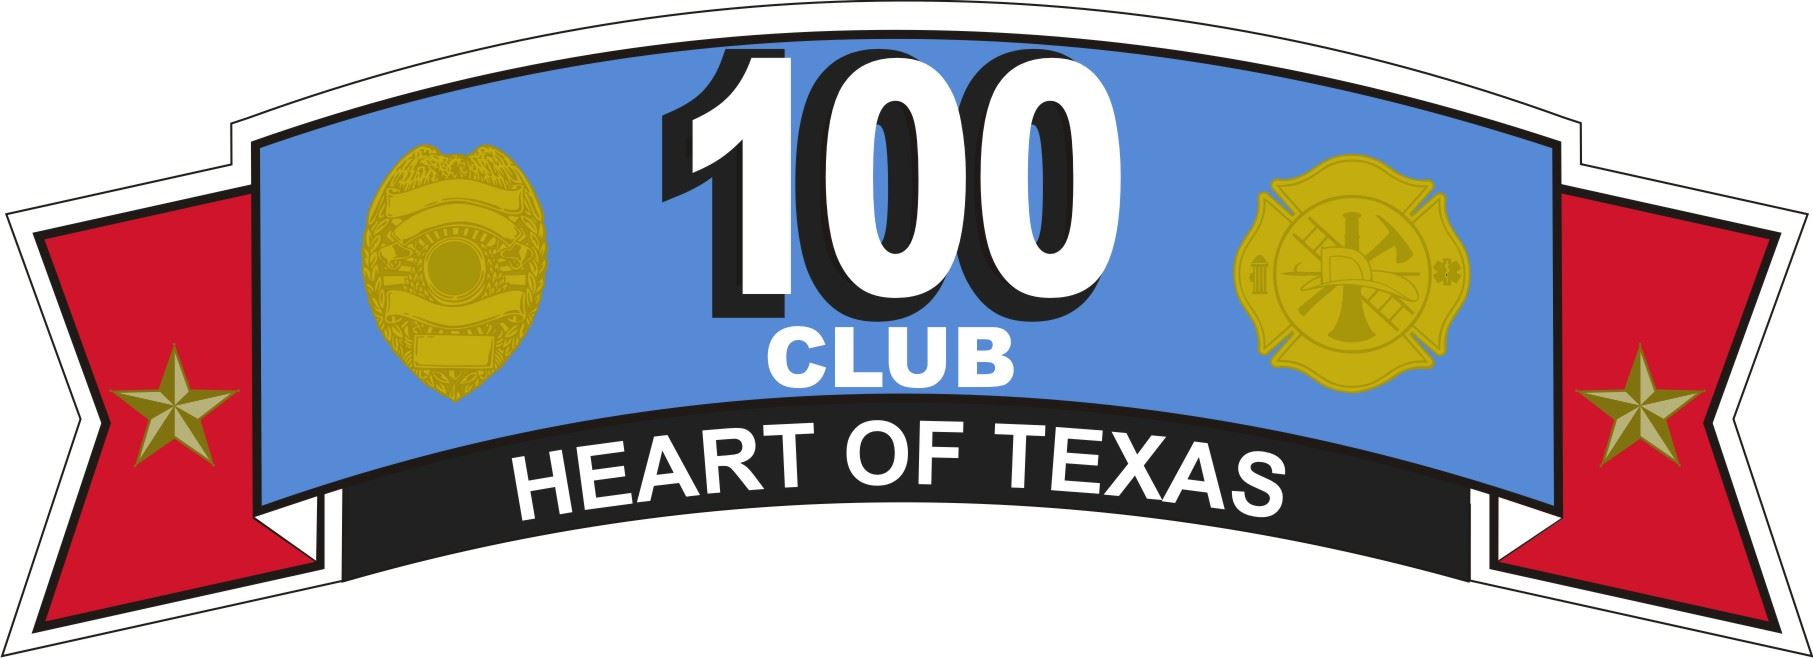 100 Club official logo